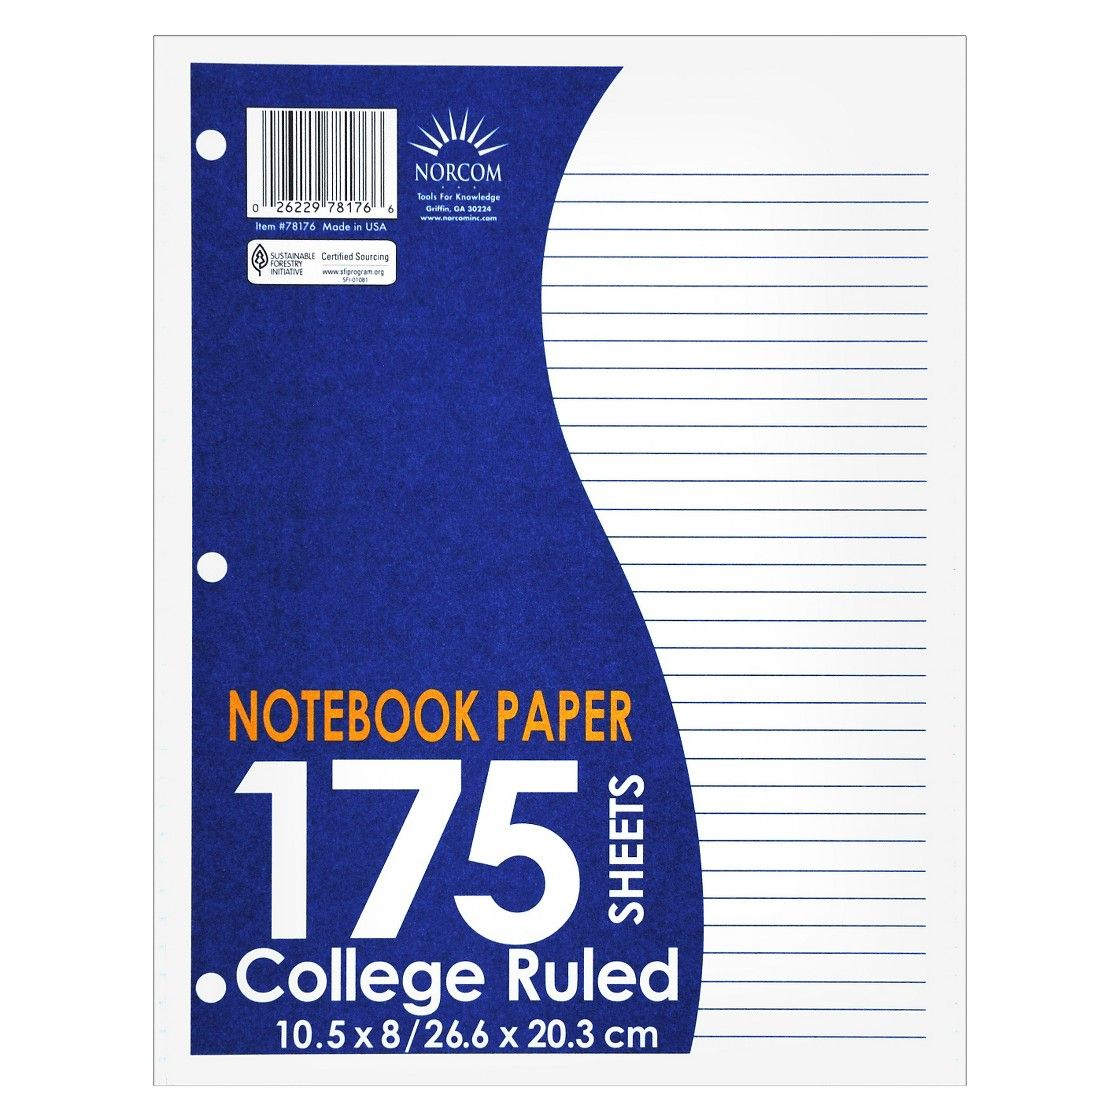 College papers discount